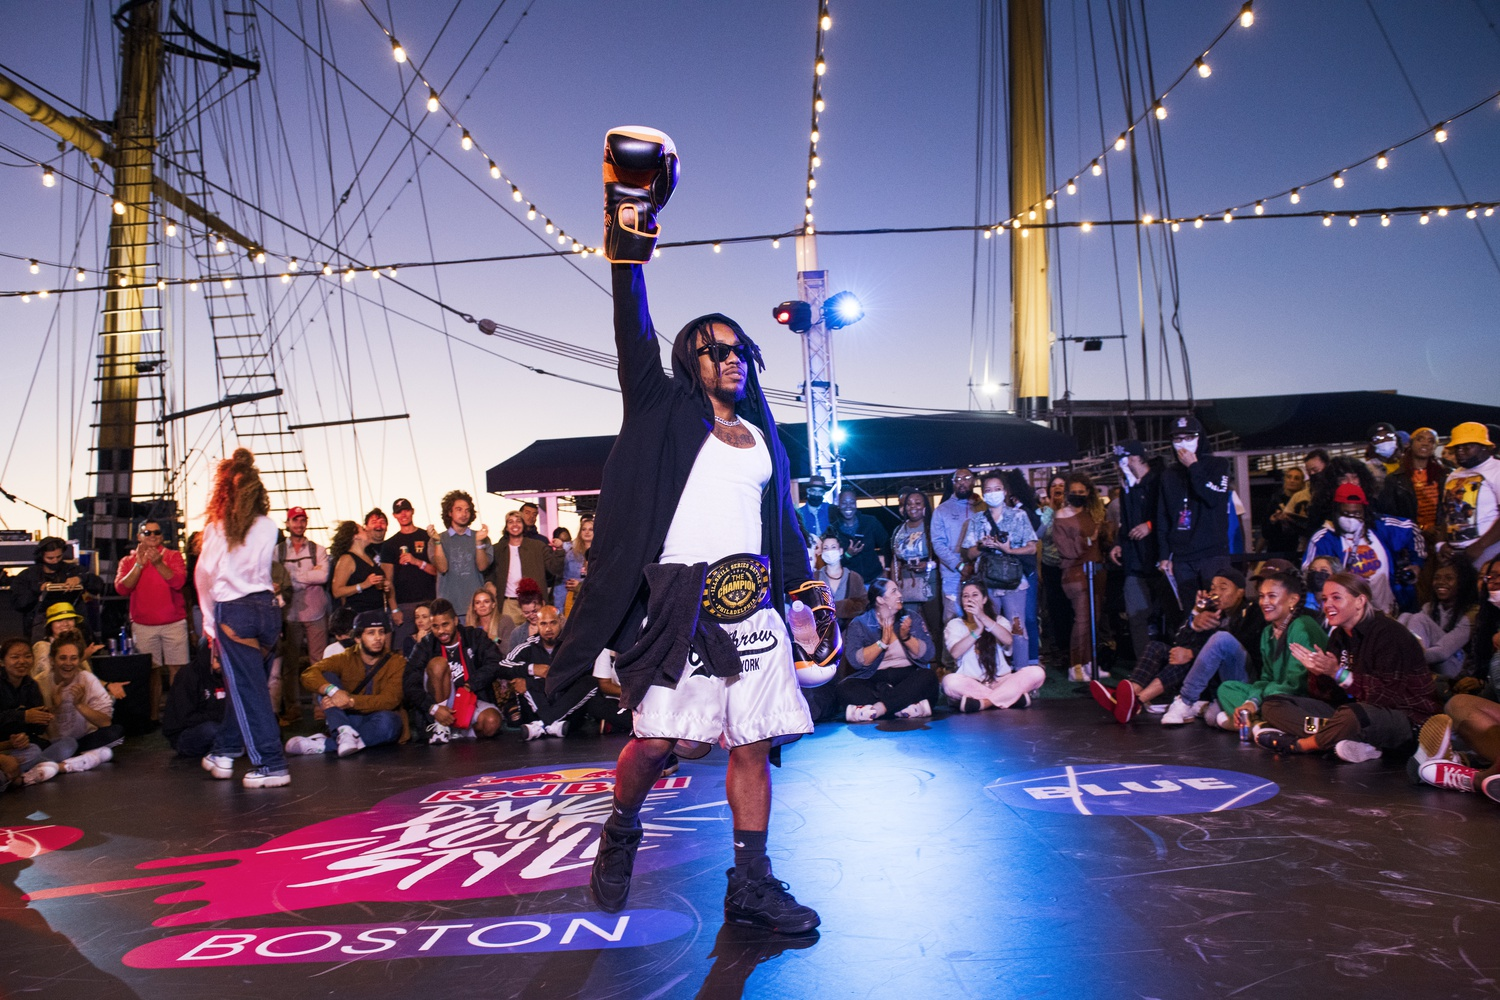 Lil-O competes at the Red Bull Dance Your Style qualifier in Boston, MA on September 10, 2021.